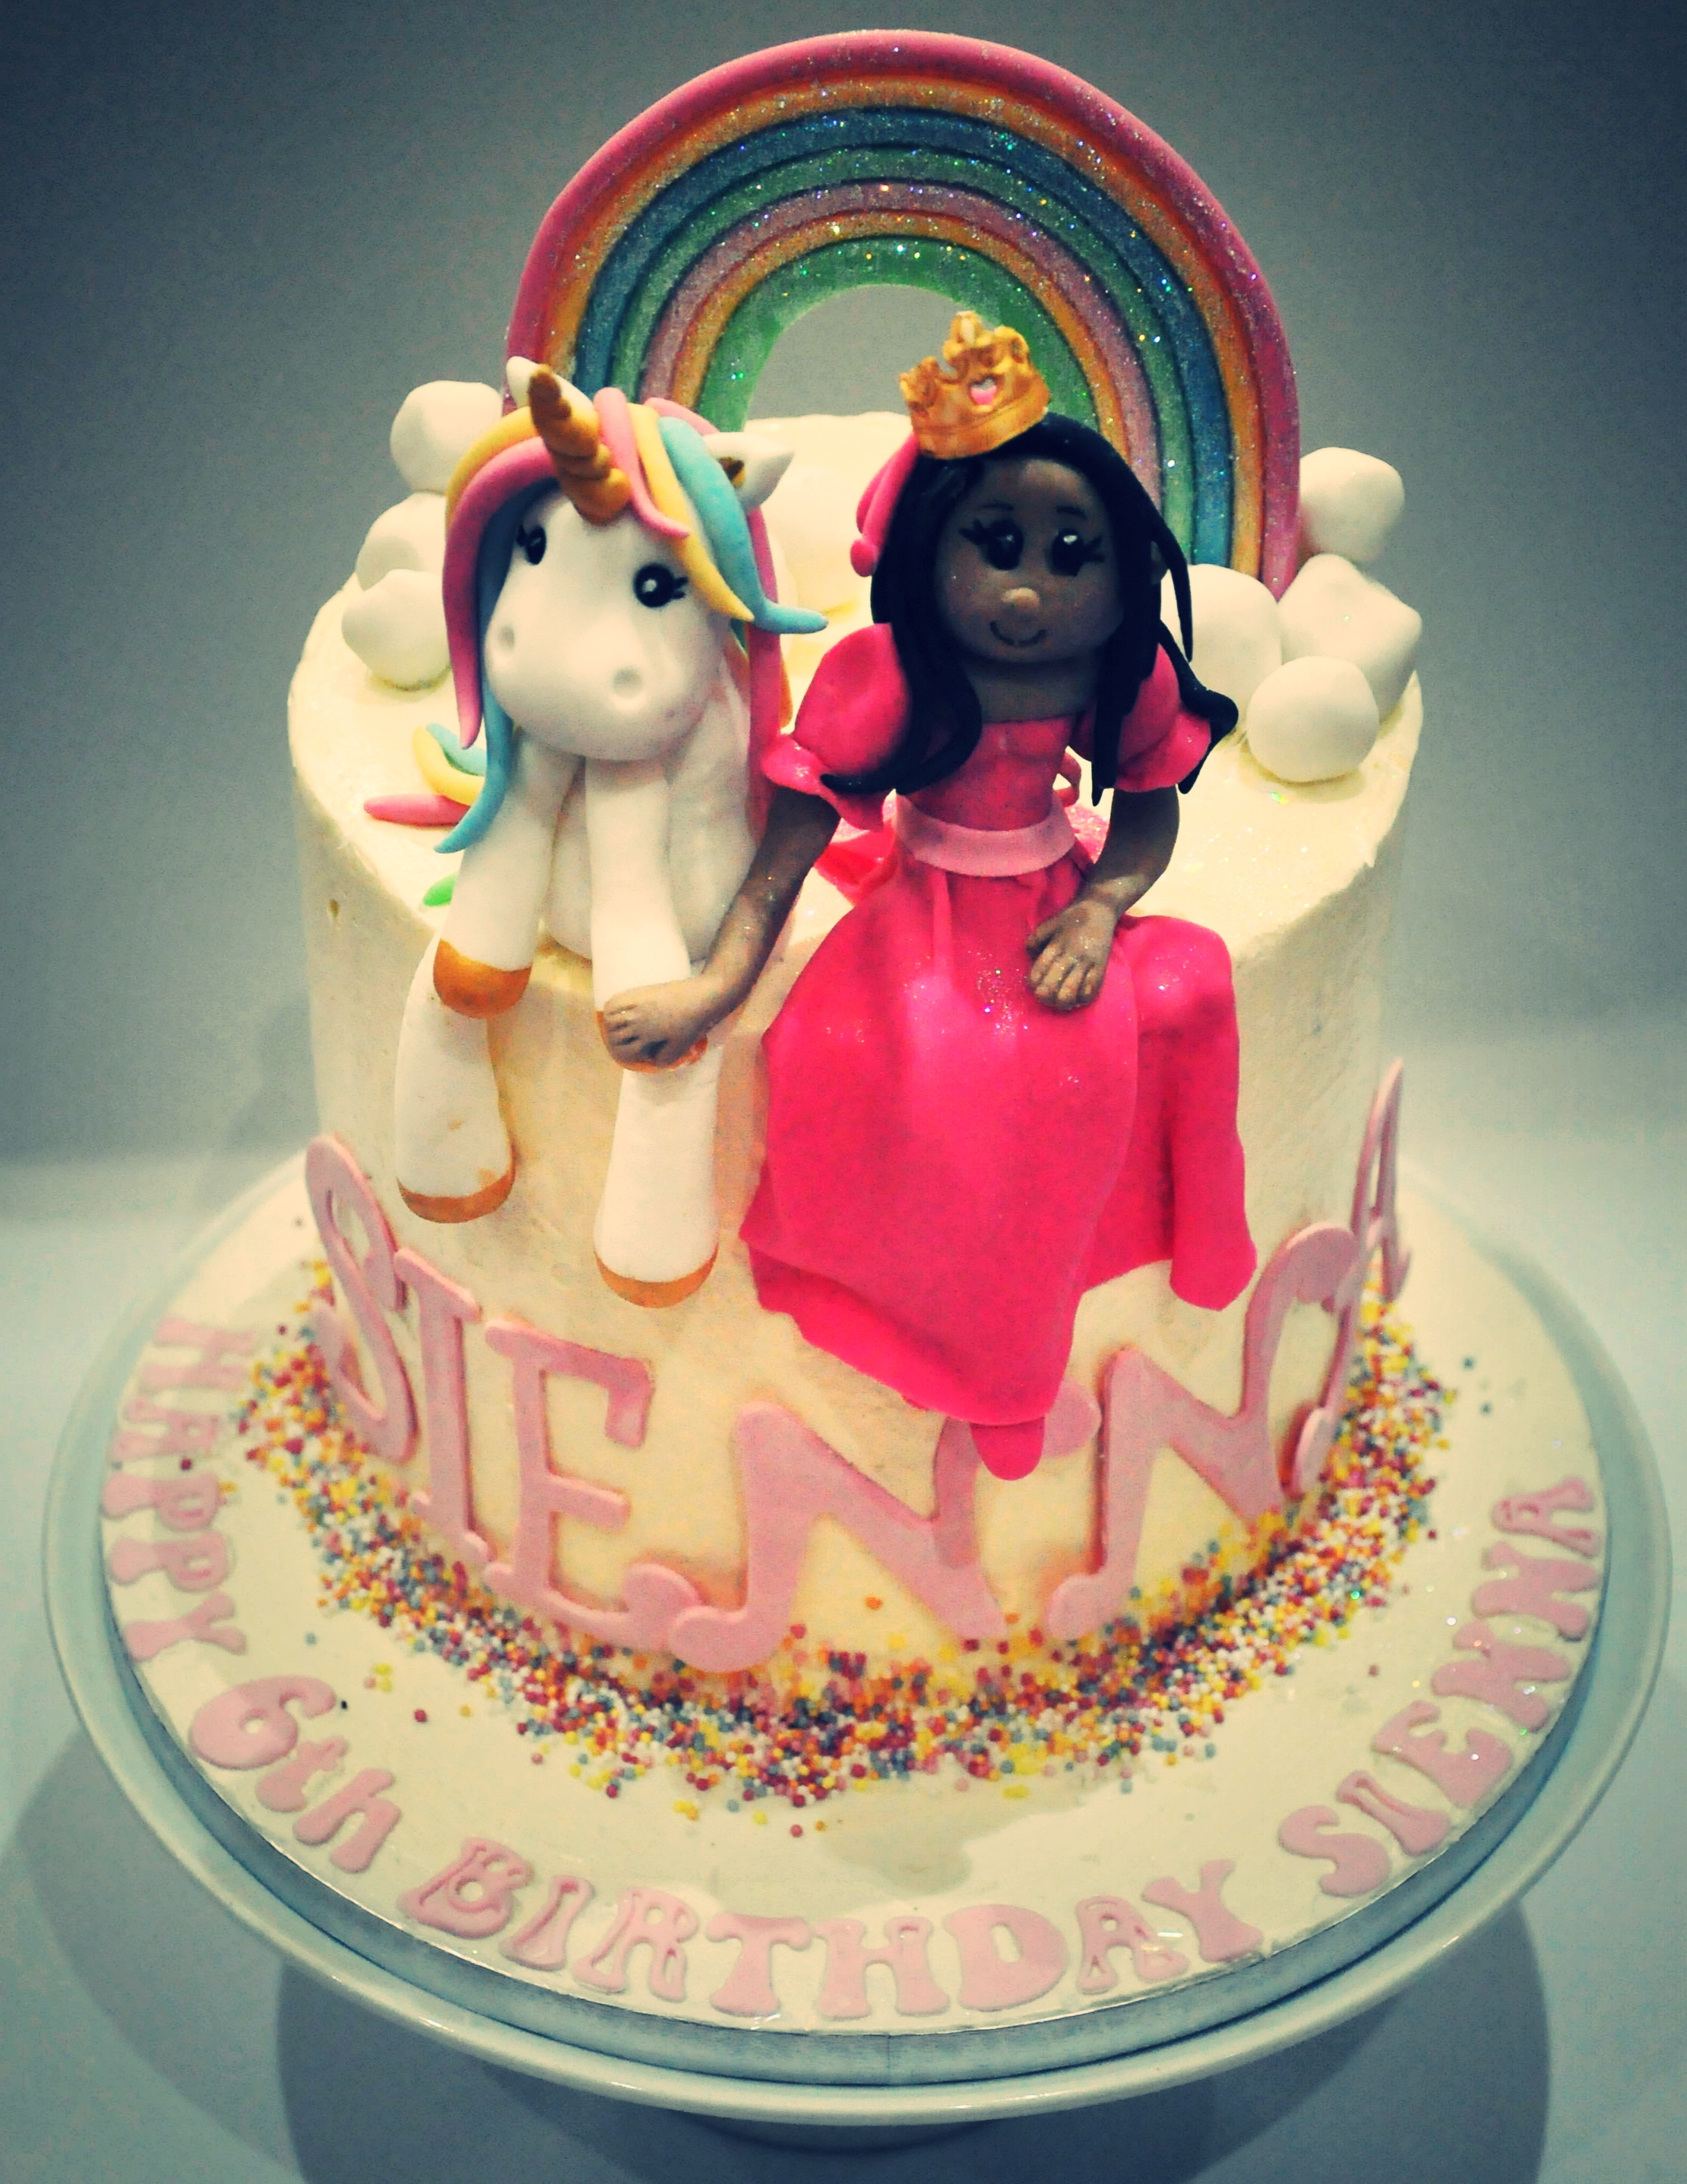 Princess and the unicorn - Here is a fun and sparkly rainbow cake with handmade princess and unicorn figures inside pastel coloured rainbow cake, delicious in seven coloured layers.